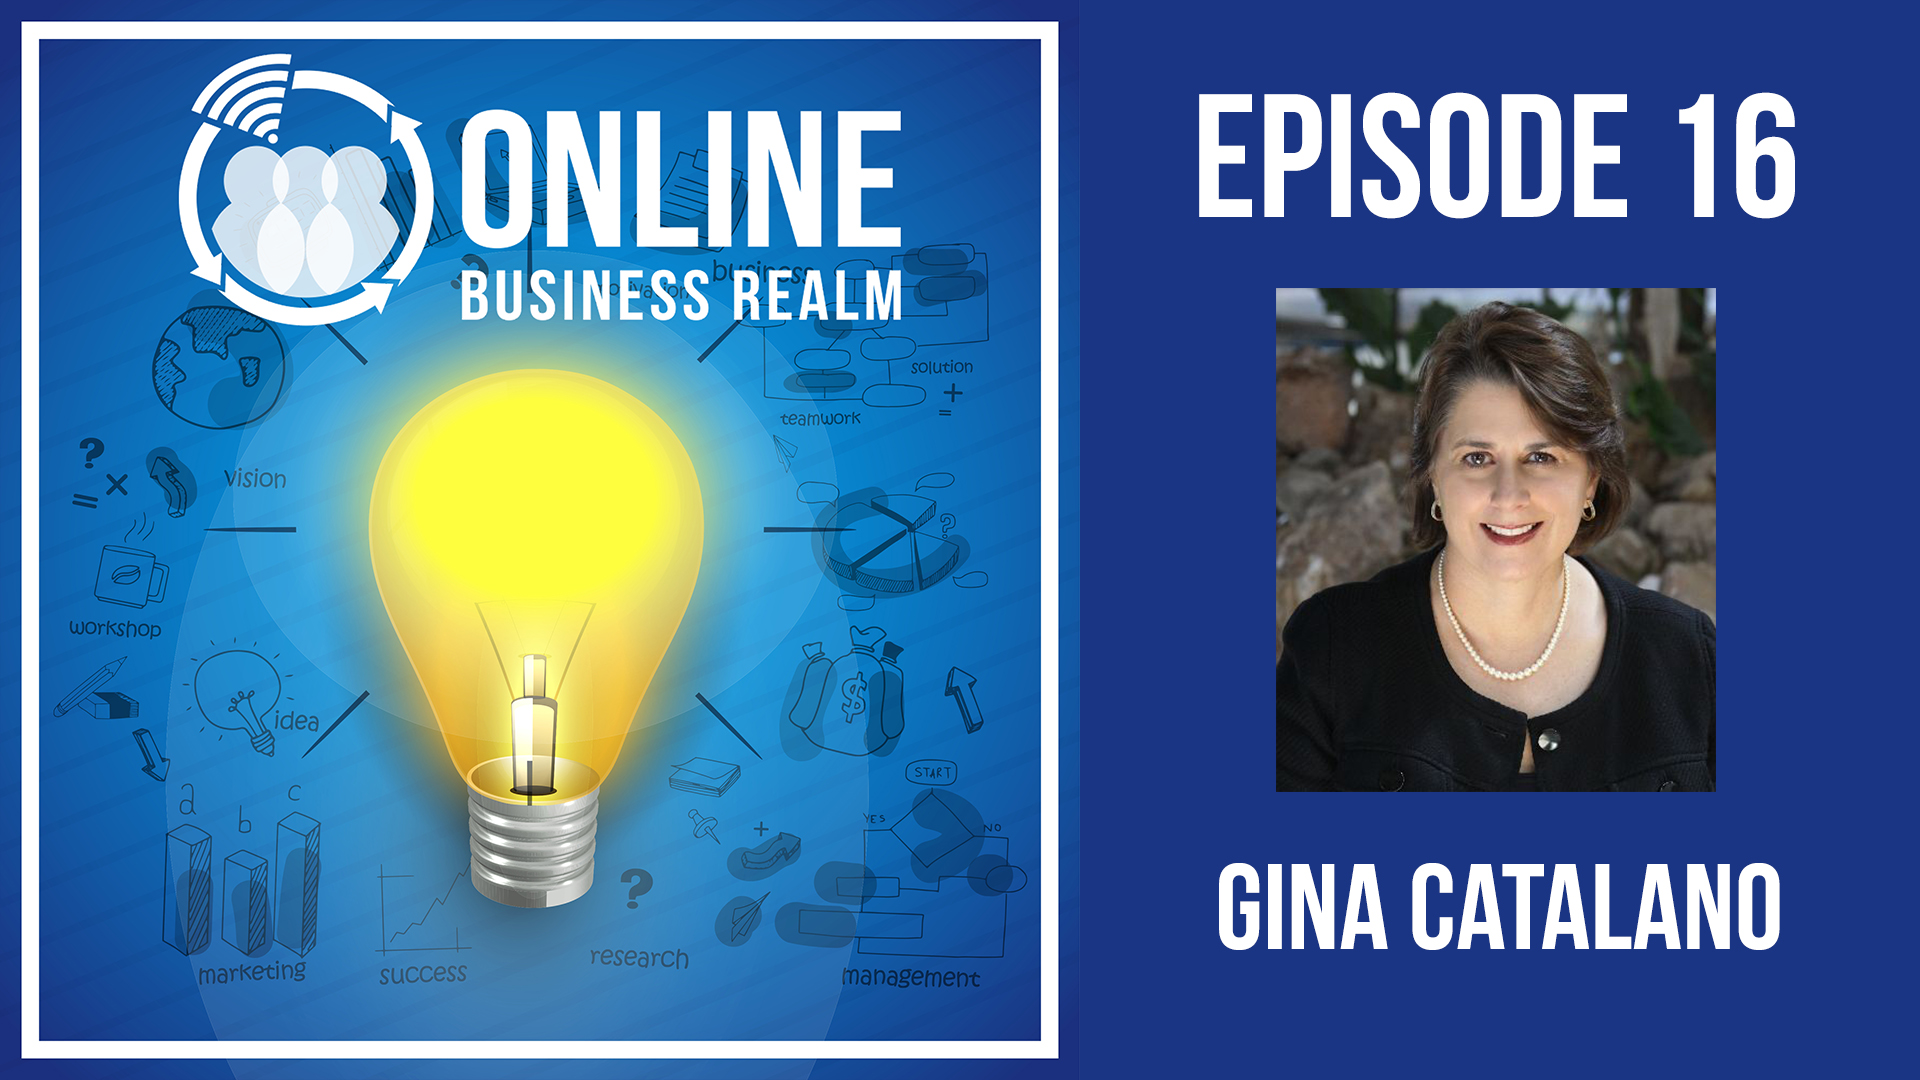 016: Entrepreneurship Grants Freedom and The Ability To Grow With